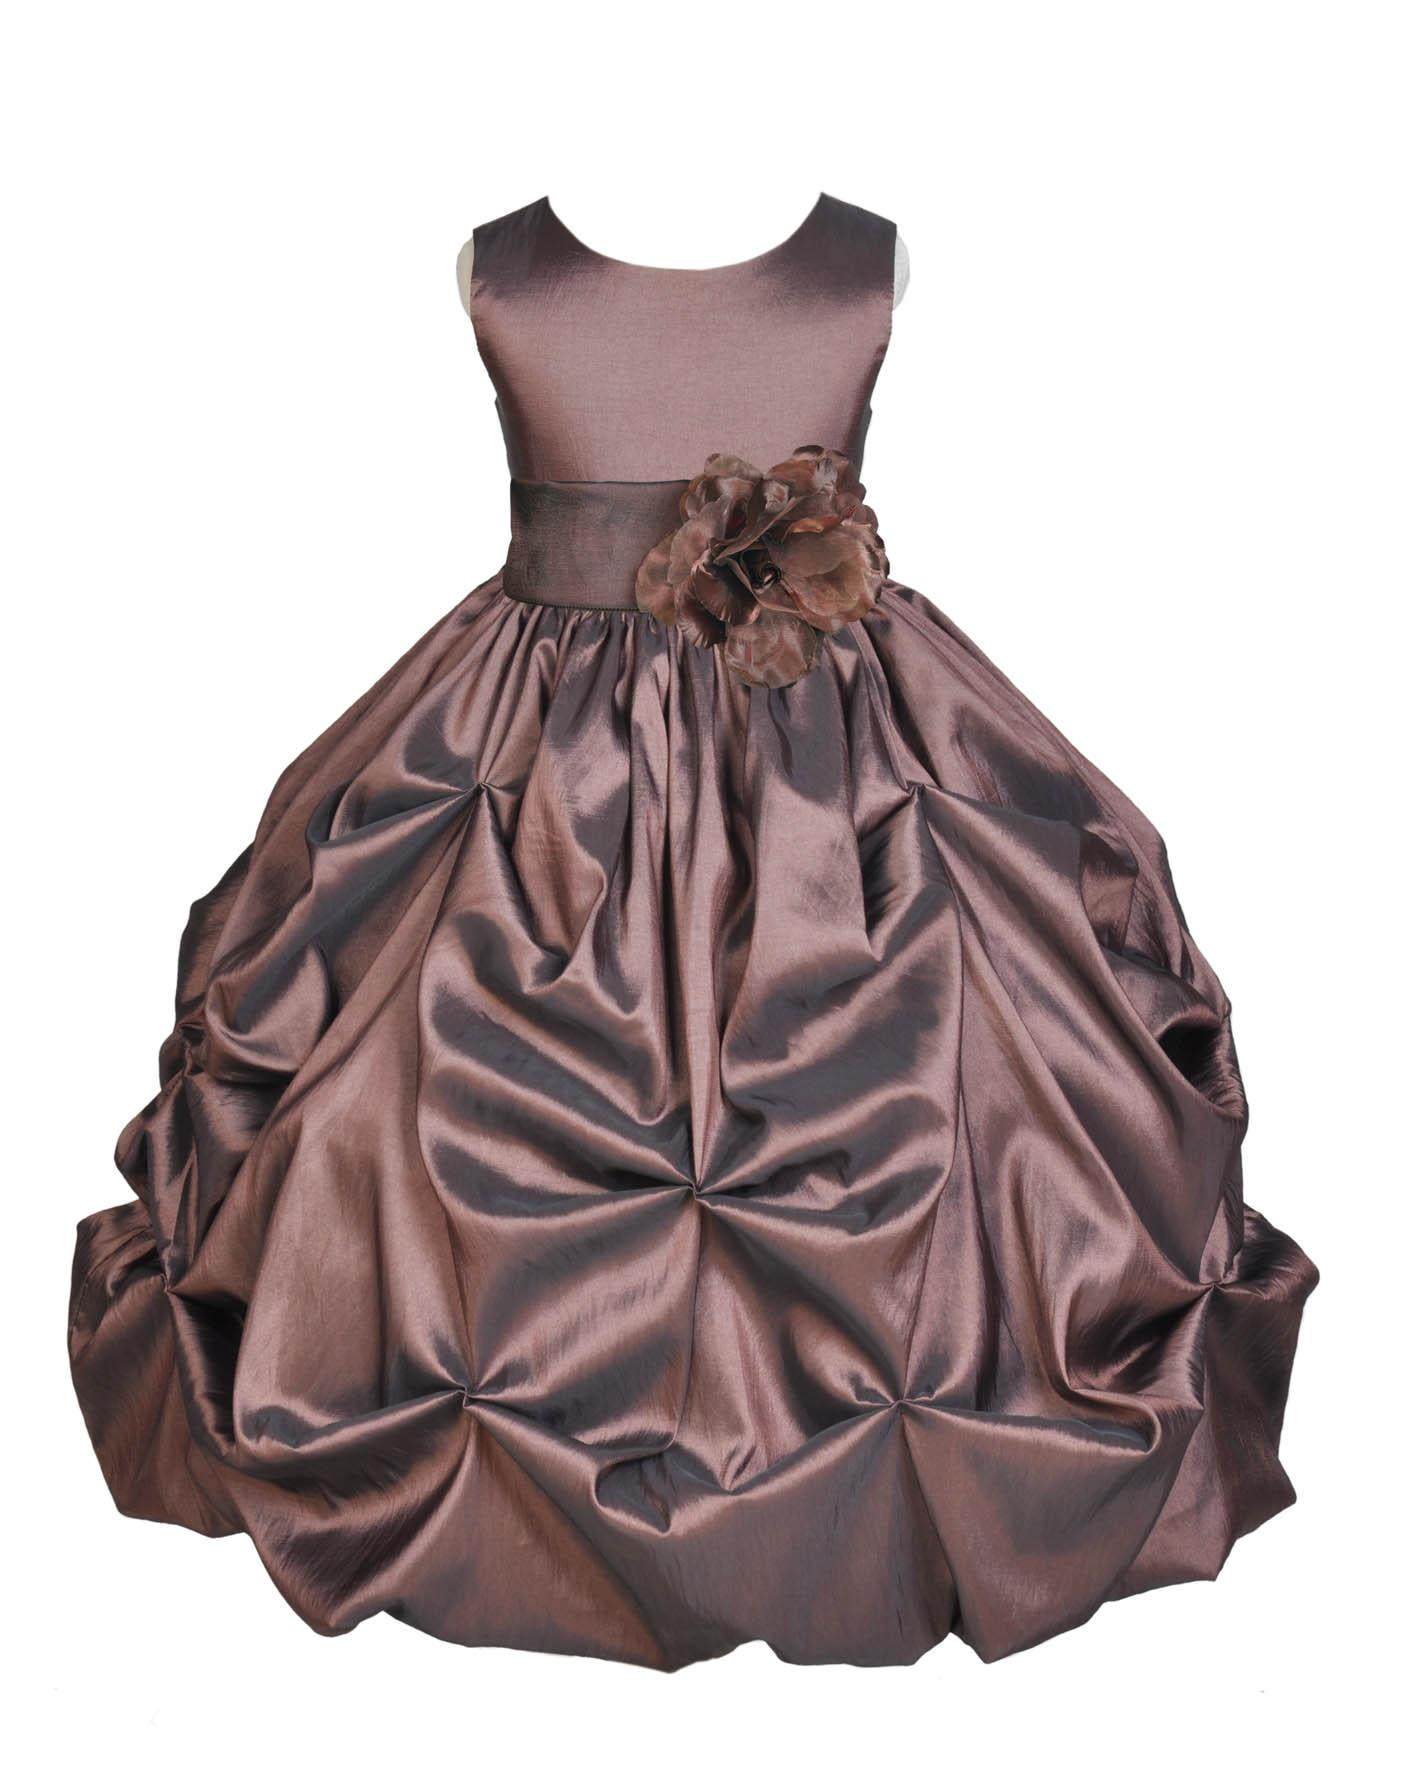 Ekidsbridal Taffeta Bubble Pick-up Brown Flower Girl Dress Weddings Summer Easter Dress Special Occasions Pageant Toddler Birthday Party Holiday Bridal Baptism Junior Bridesmaid First Communion 301S